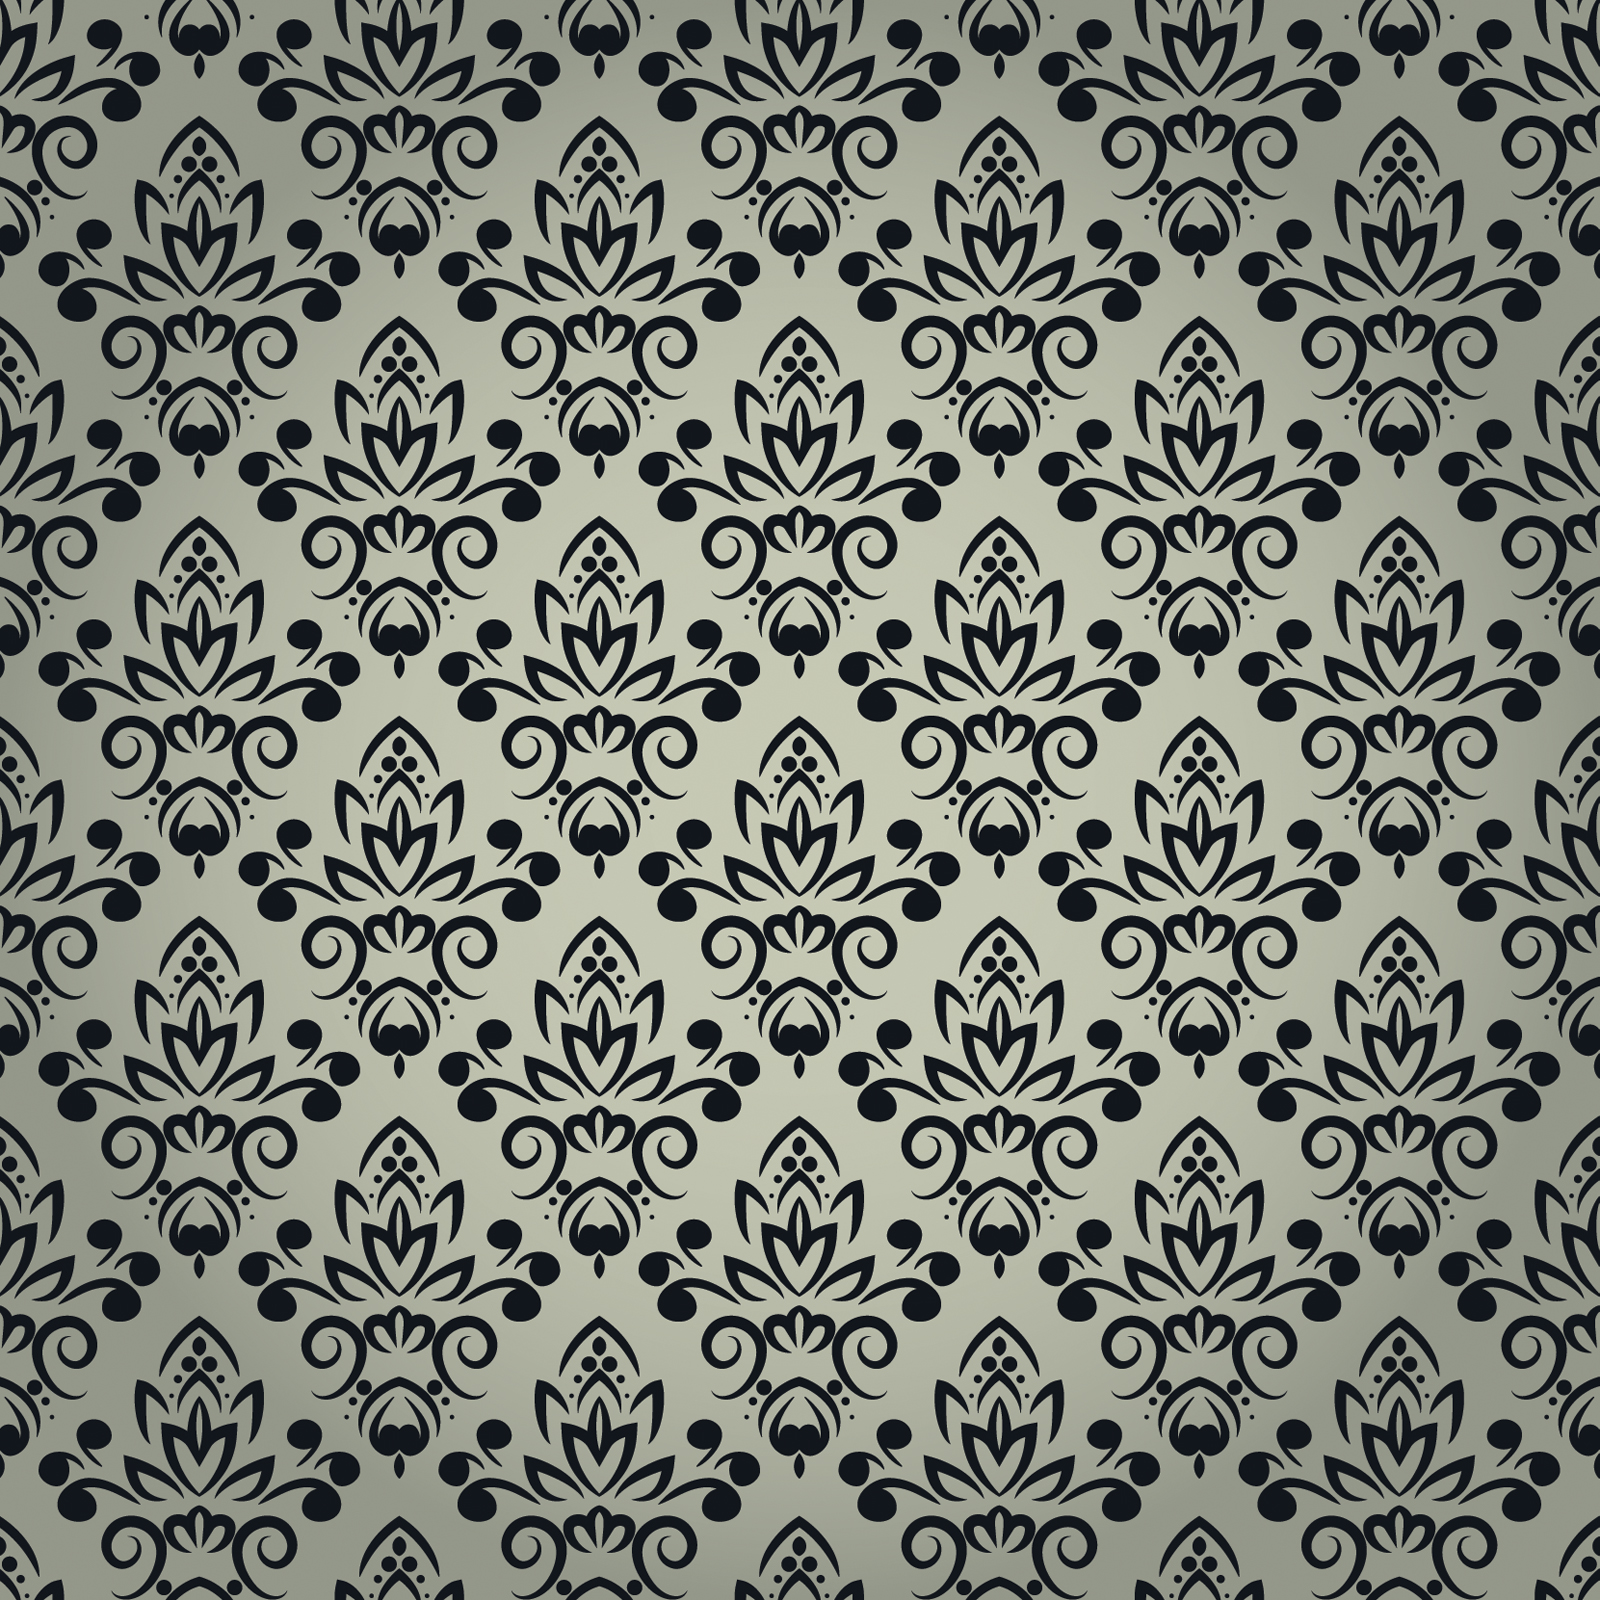 lack Floral Pattern with Seamless